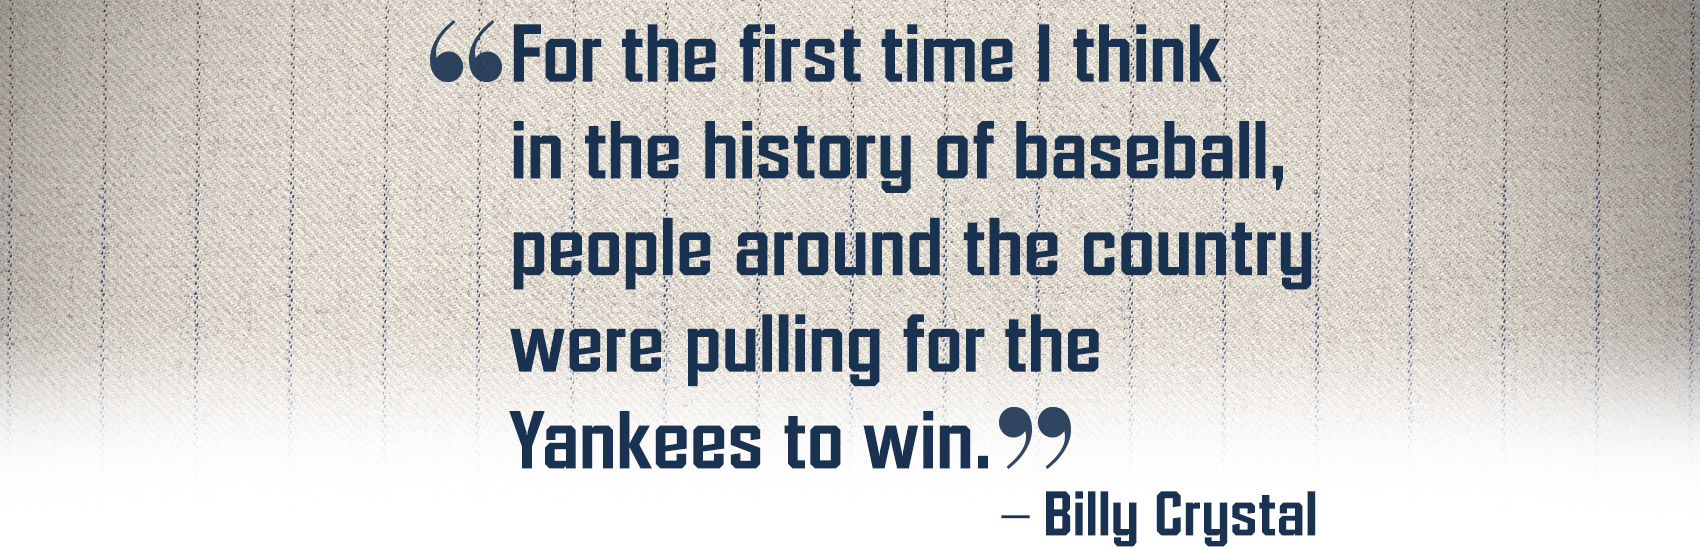 Baseball Quote How Baseball And The Yankees Helped New York Heal Post 911